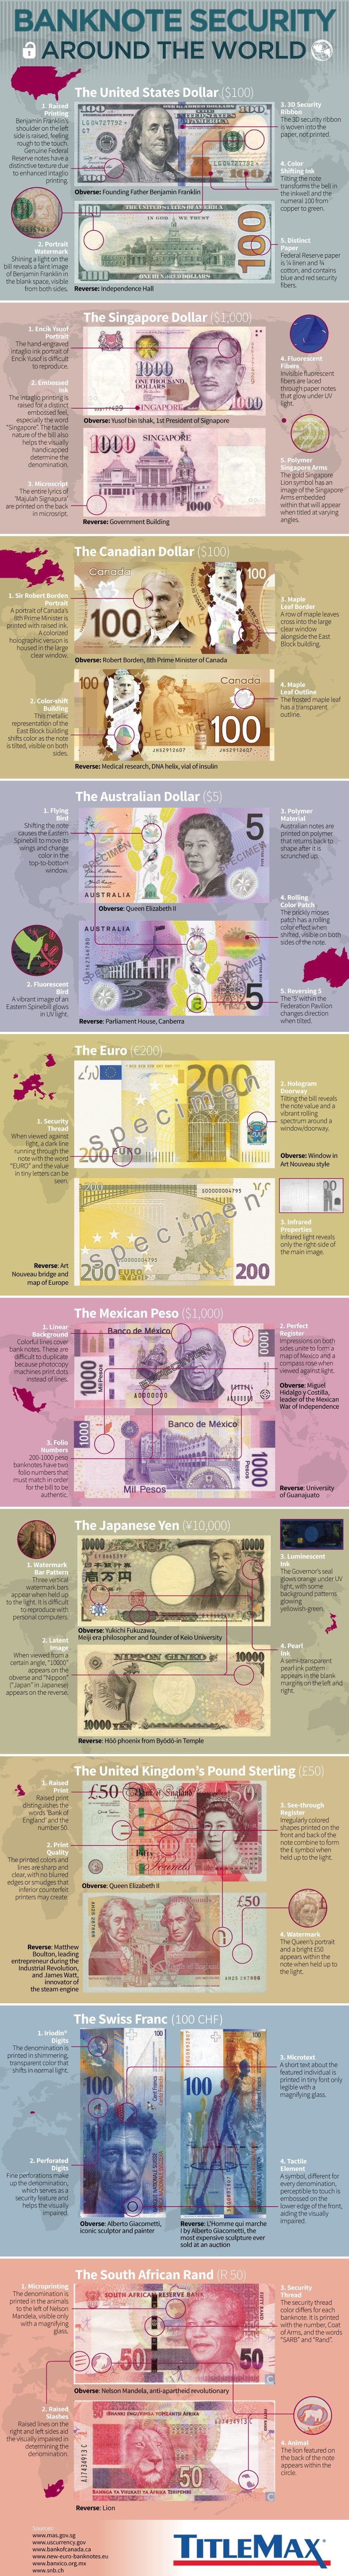 Banknote Security Around the World #Infographic